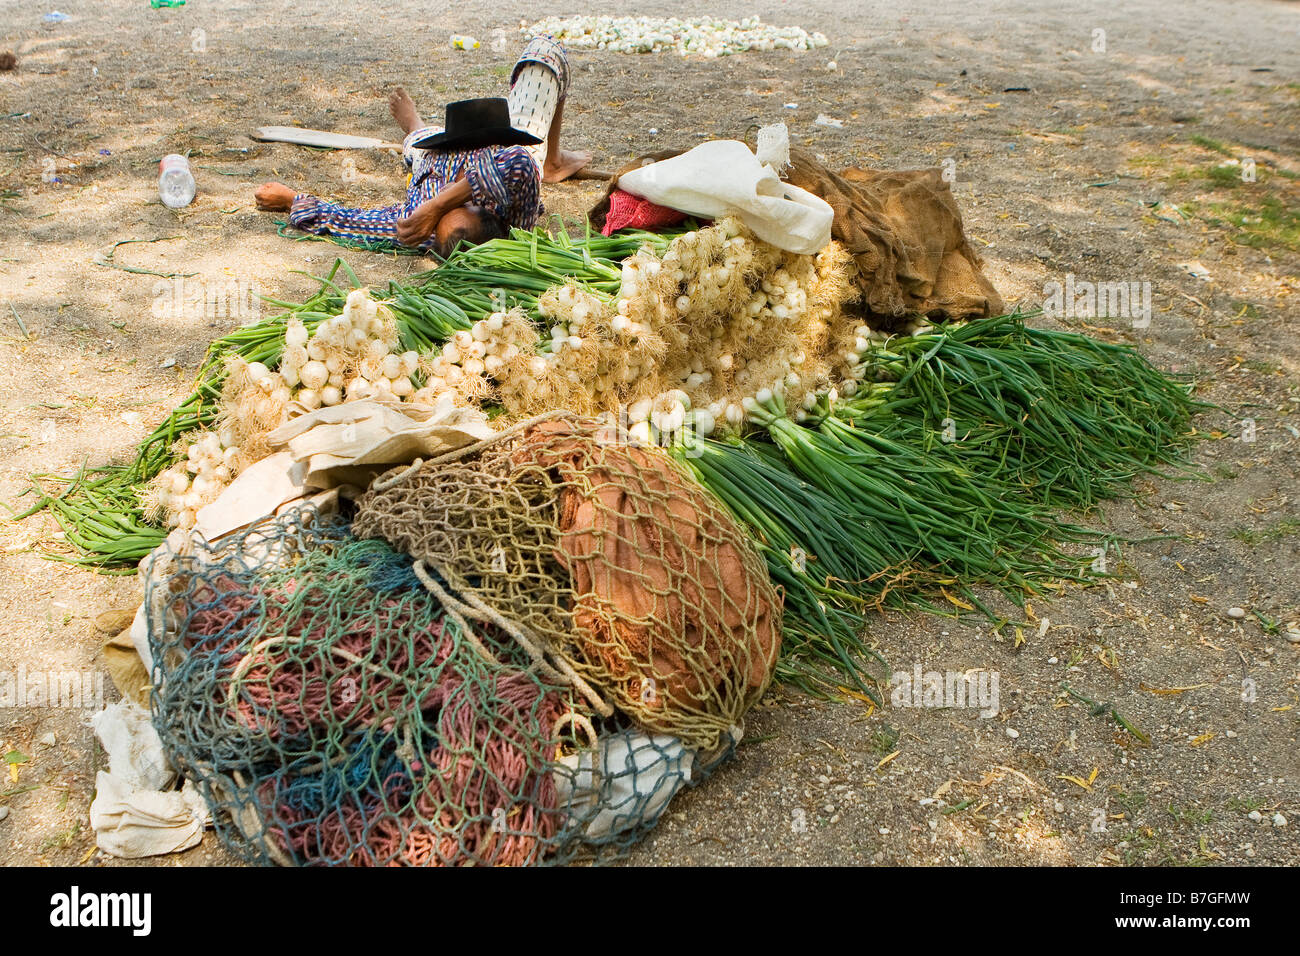 Indigenous farmer takes a break after a long day of harvesting green onions Santiago Atitlan, Lake Atitlan Guatemala - Stock Image